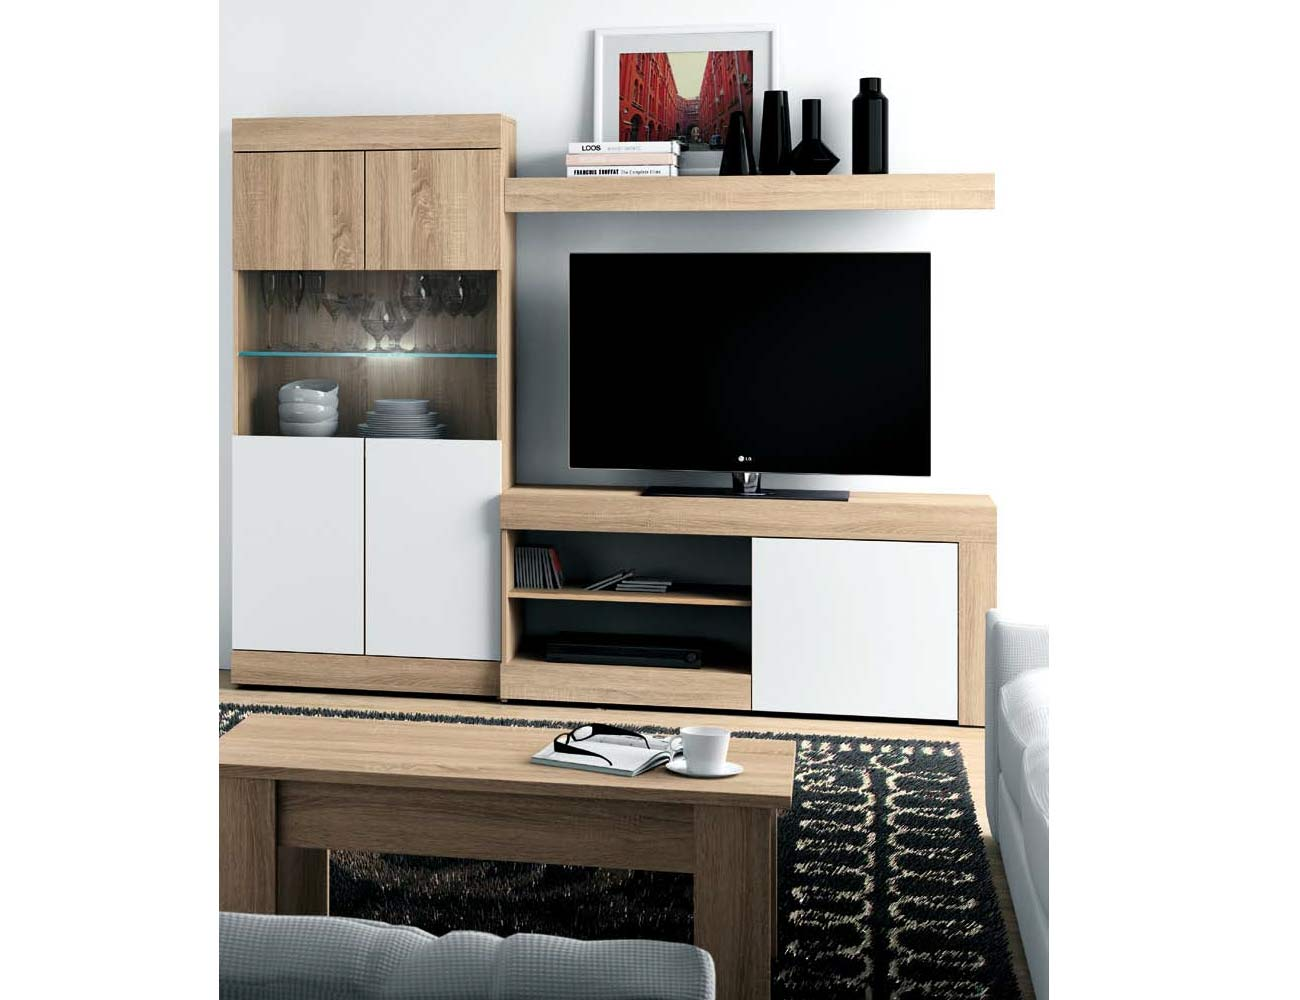 Mueble salon moderno leds cambrian blanco ambiente 22